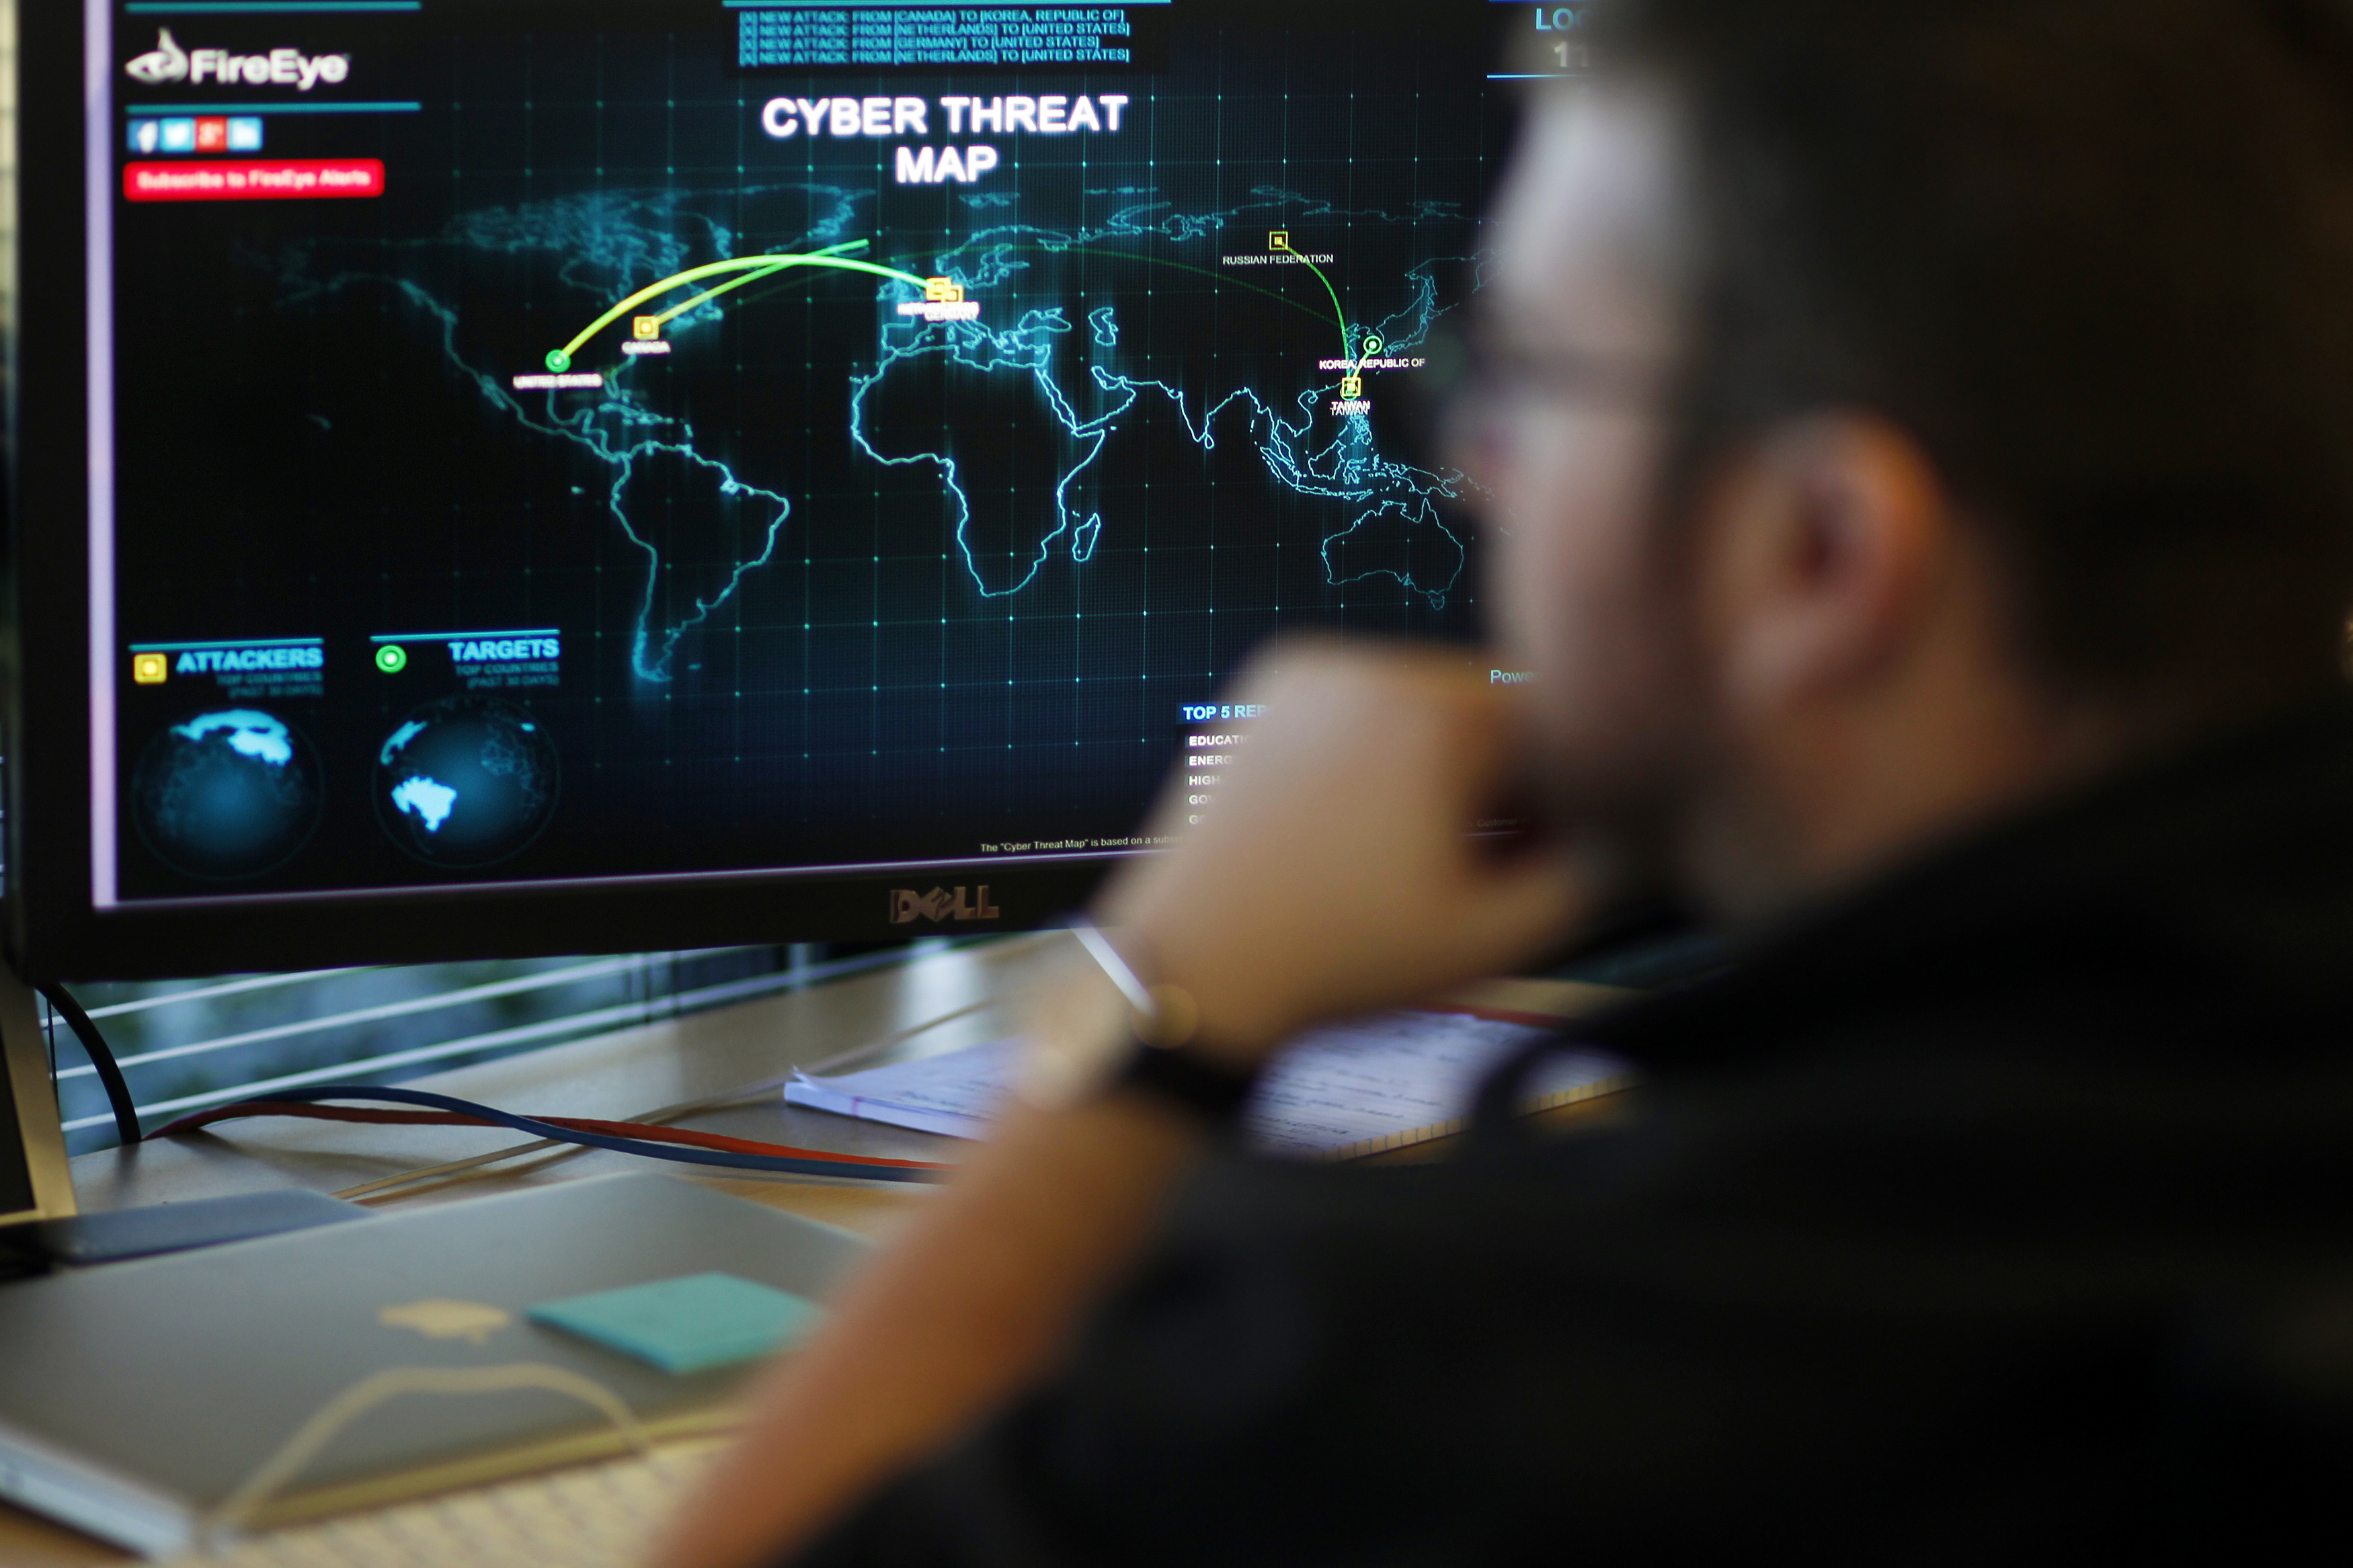 FireEye information analyst works in front of a screen showing a near real-time map tracking cyber threats at the FireEye office in Milpitas, California